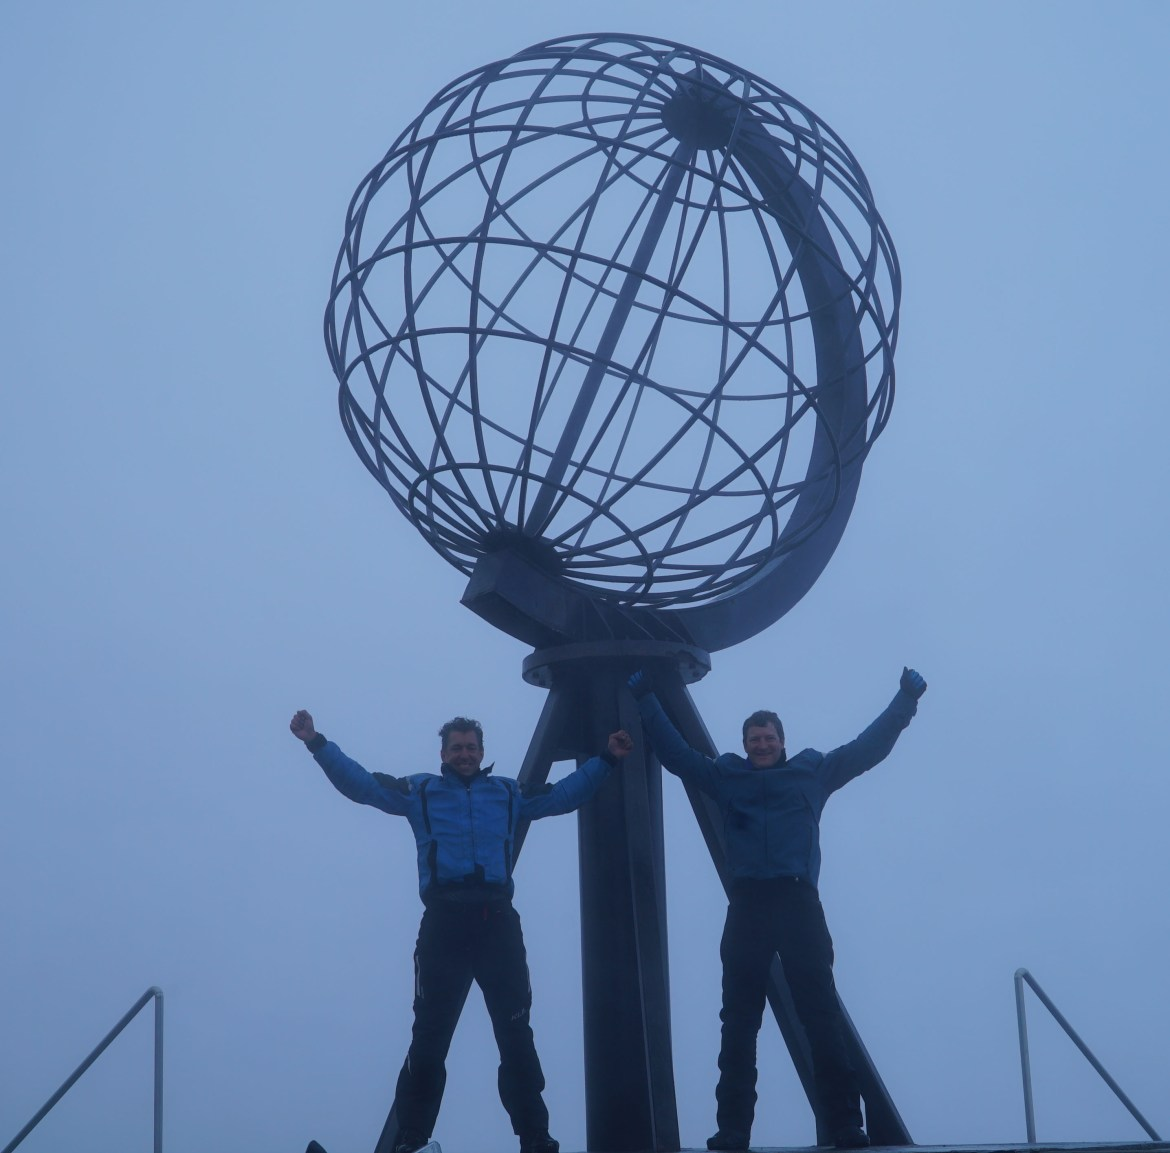 Dave & Roy at Nordkapp